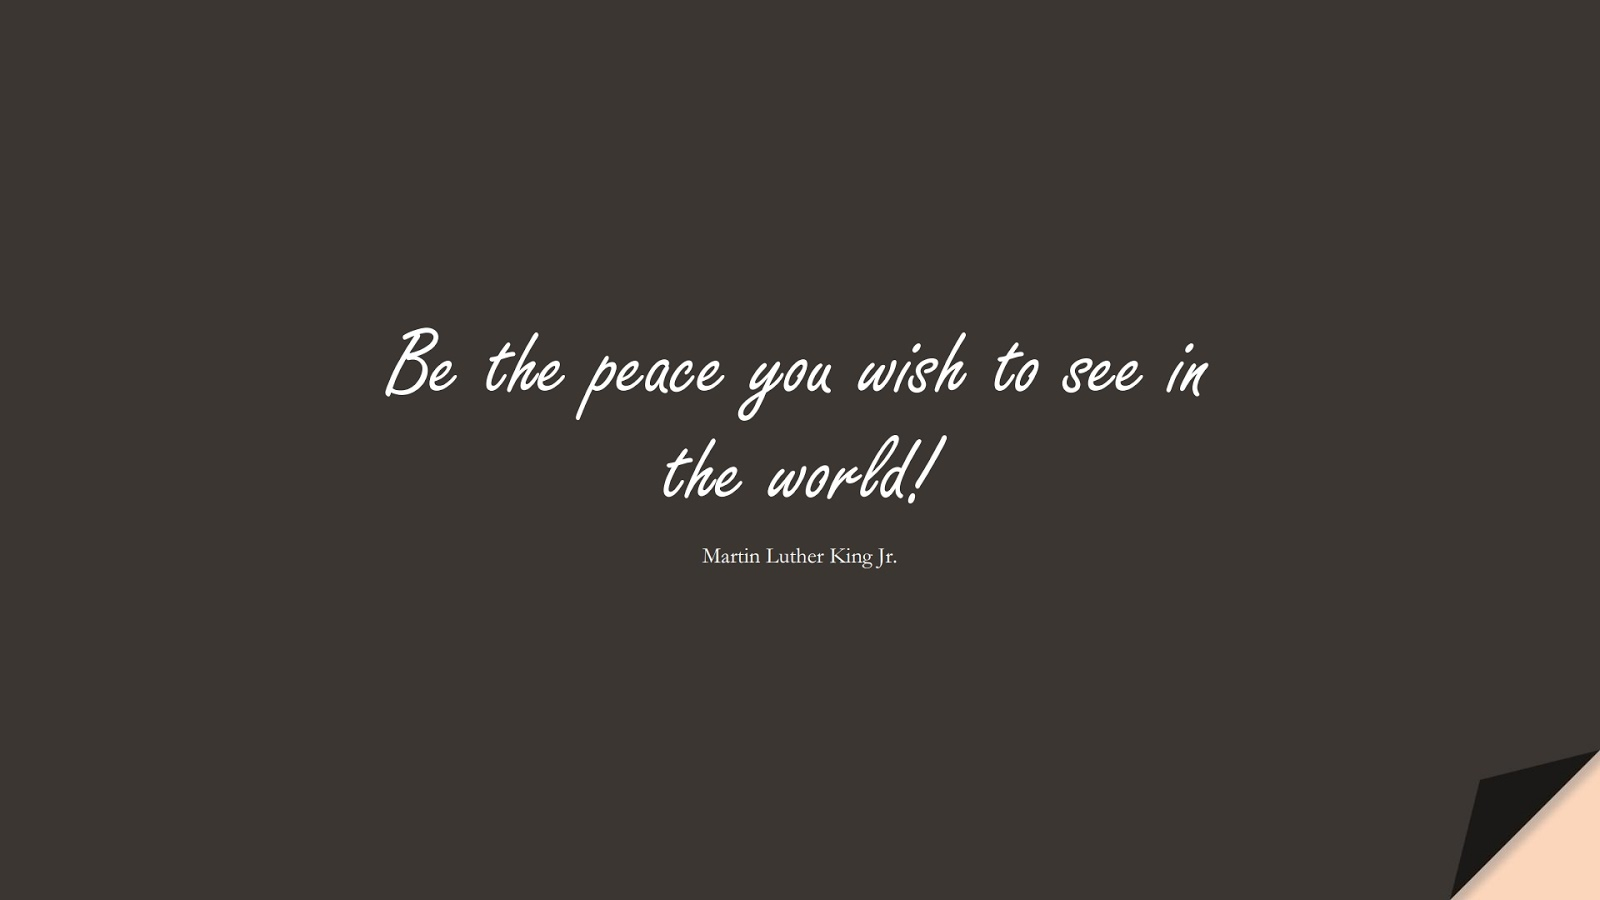 Be the peace you wish to see in the world! (Martin Luther King Jr.);  #MartinLutherKingJrQuotes